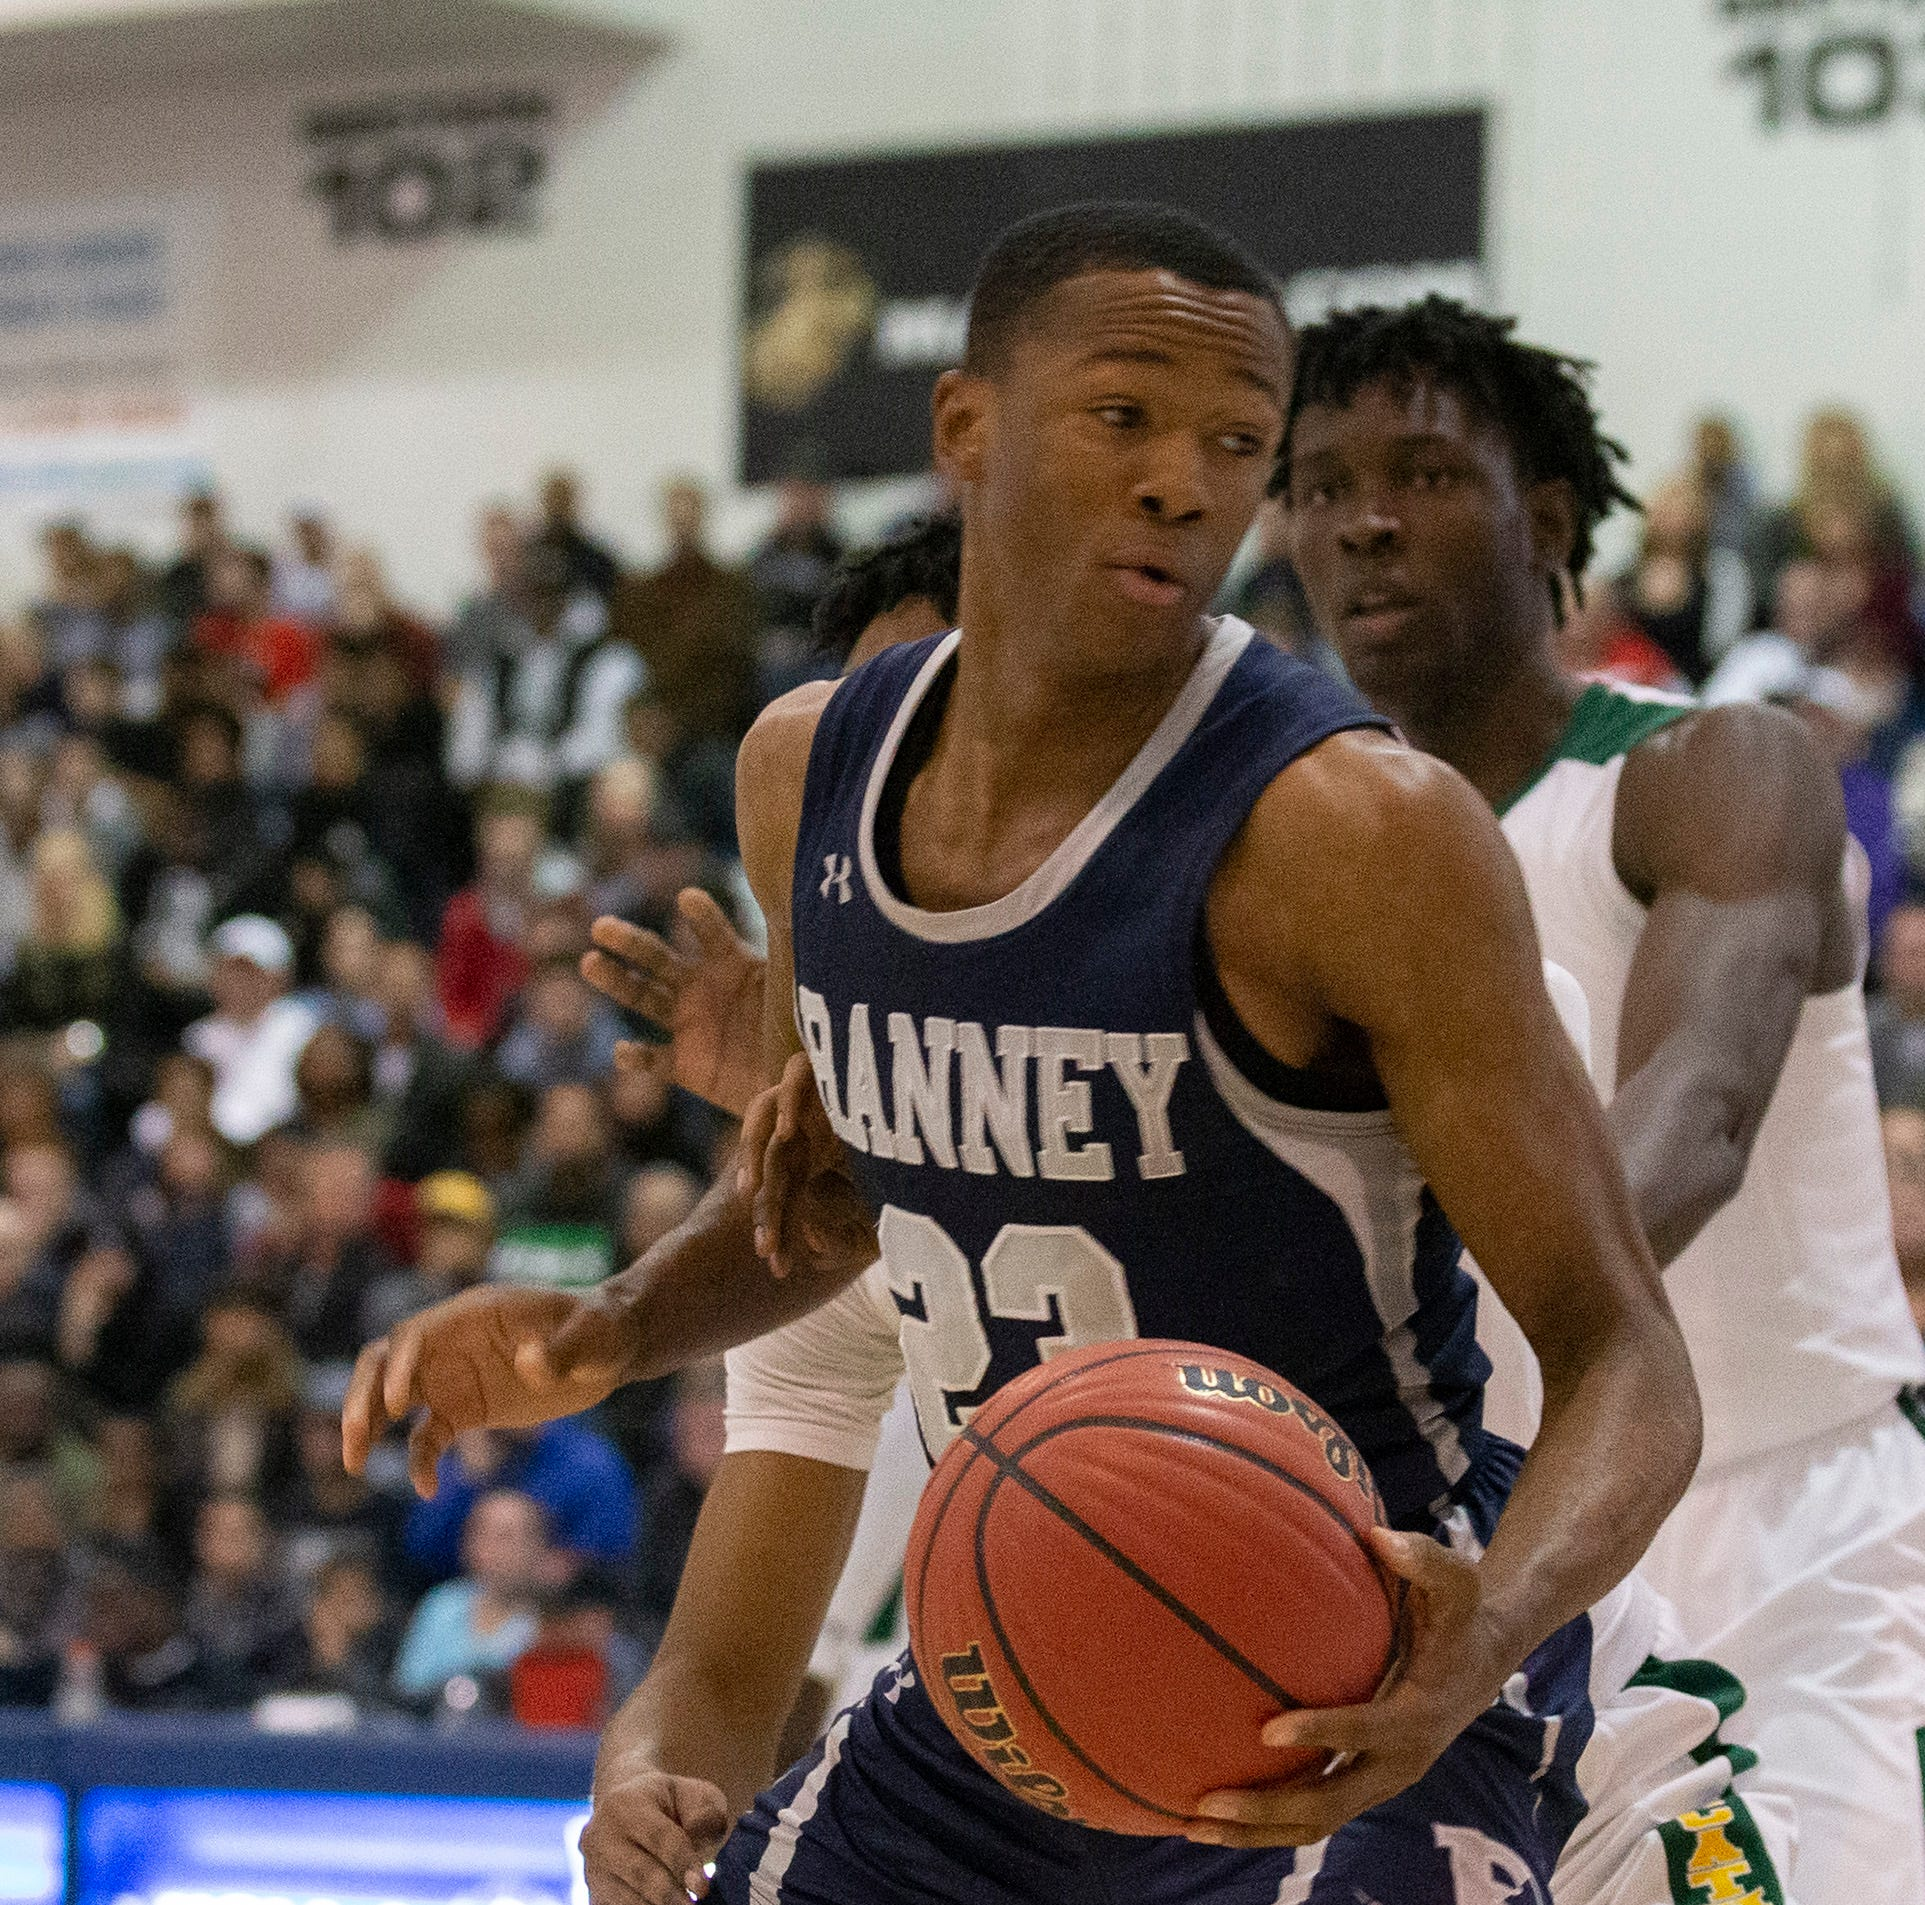 NJ hoops: Is Ranney greatest Jersey Shore team? TOC has answers